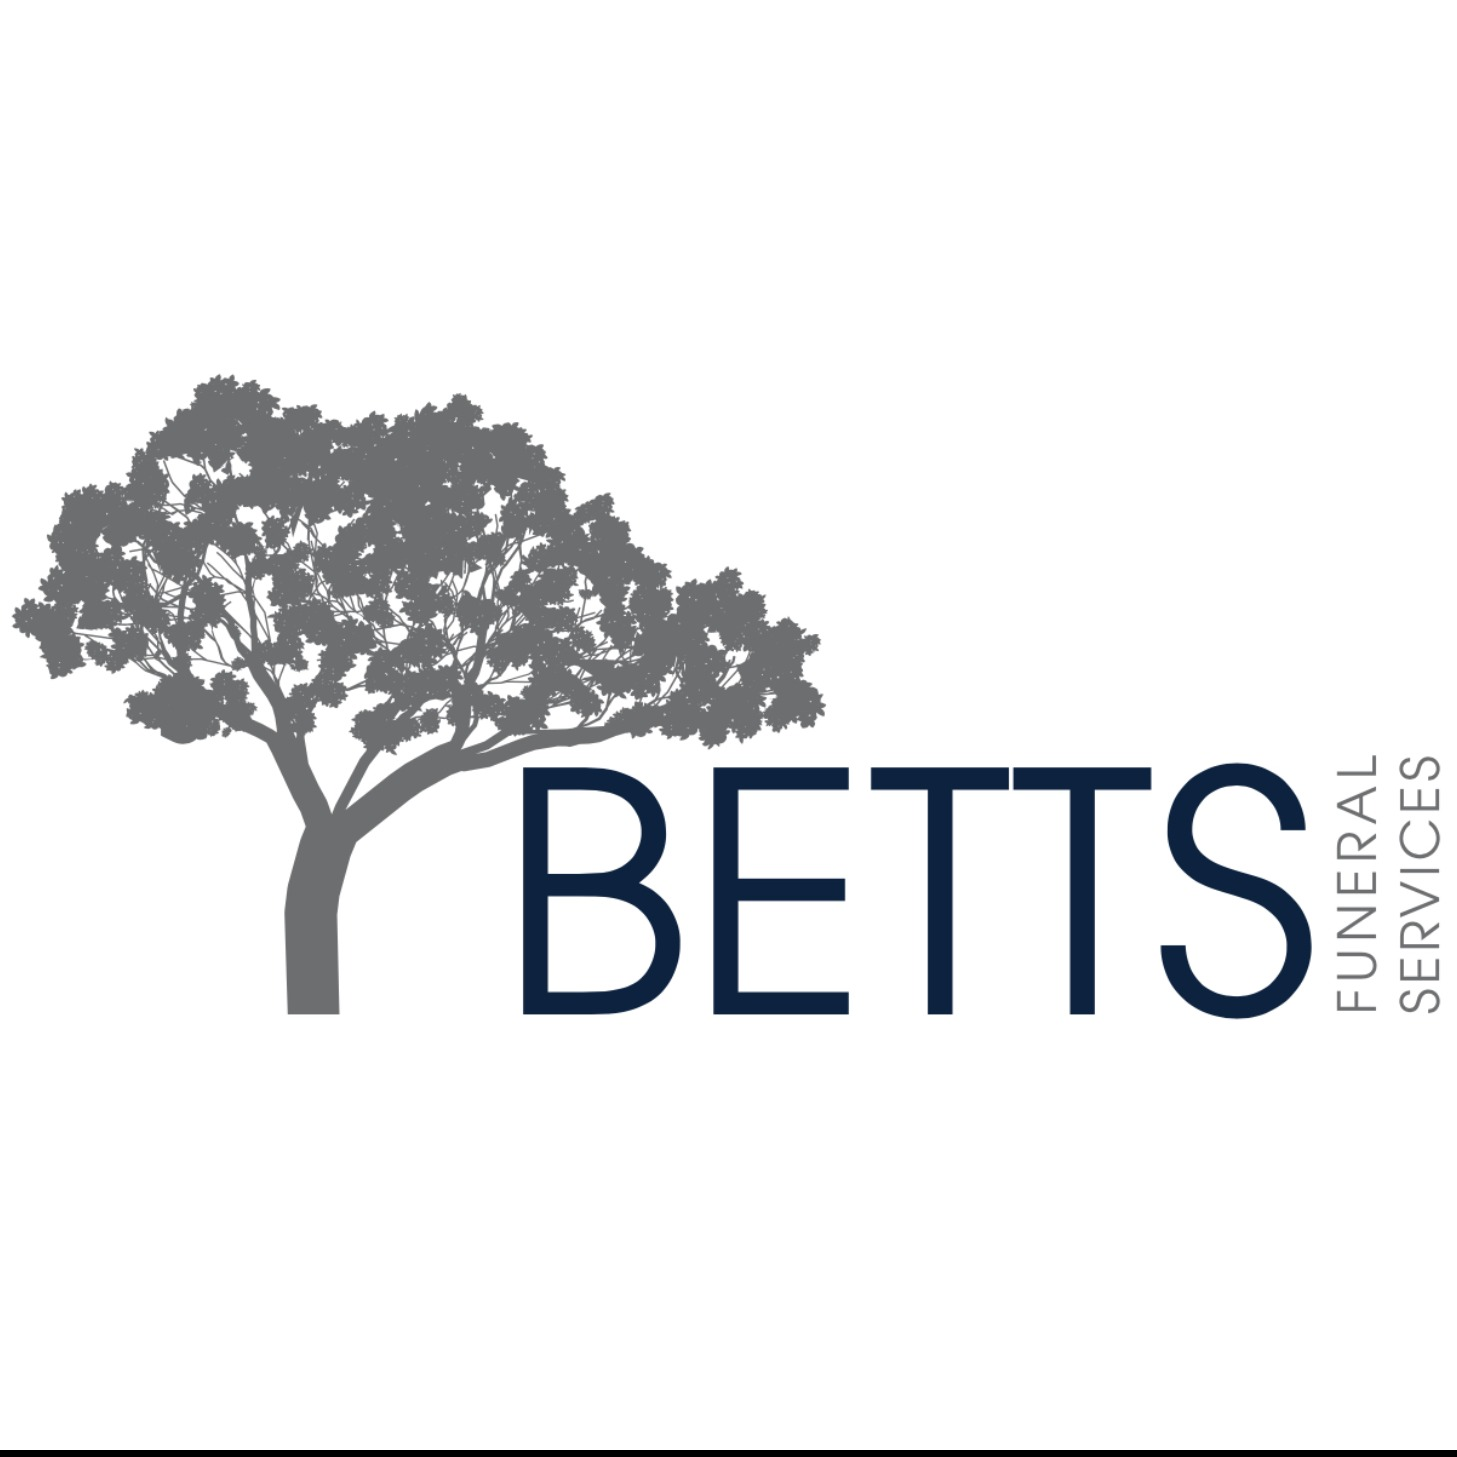 Betts Funeral Services Ltd